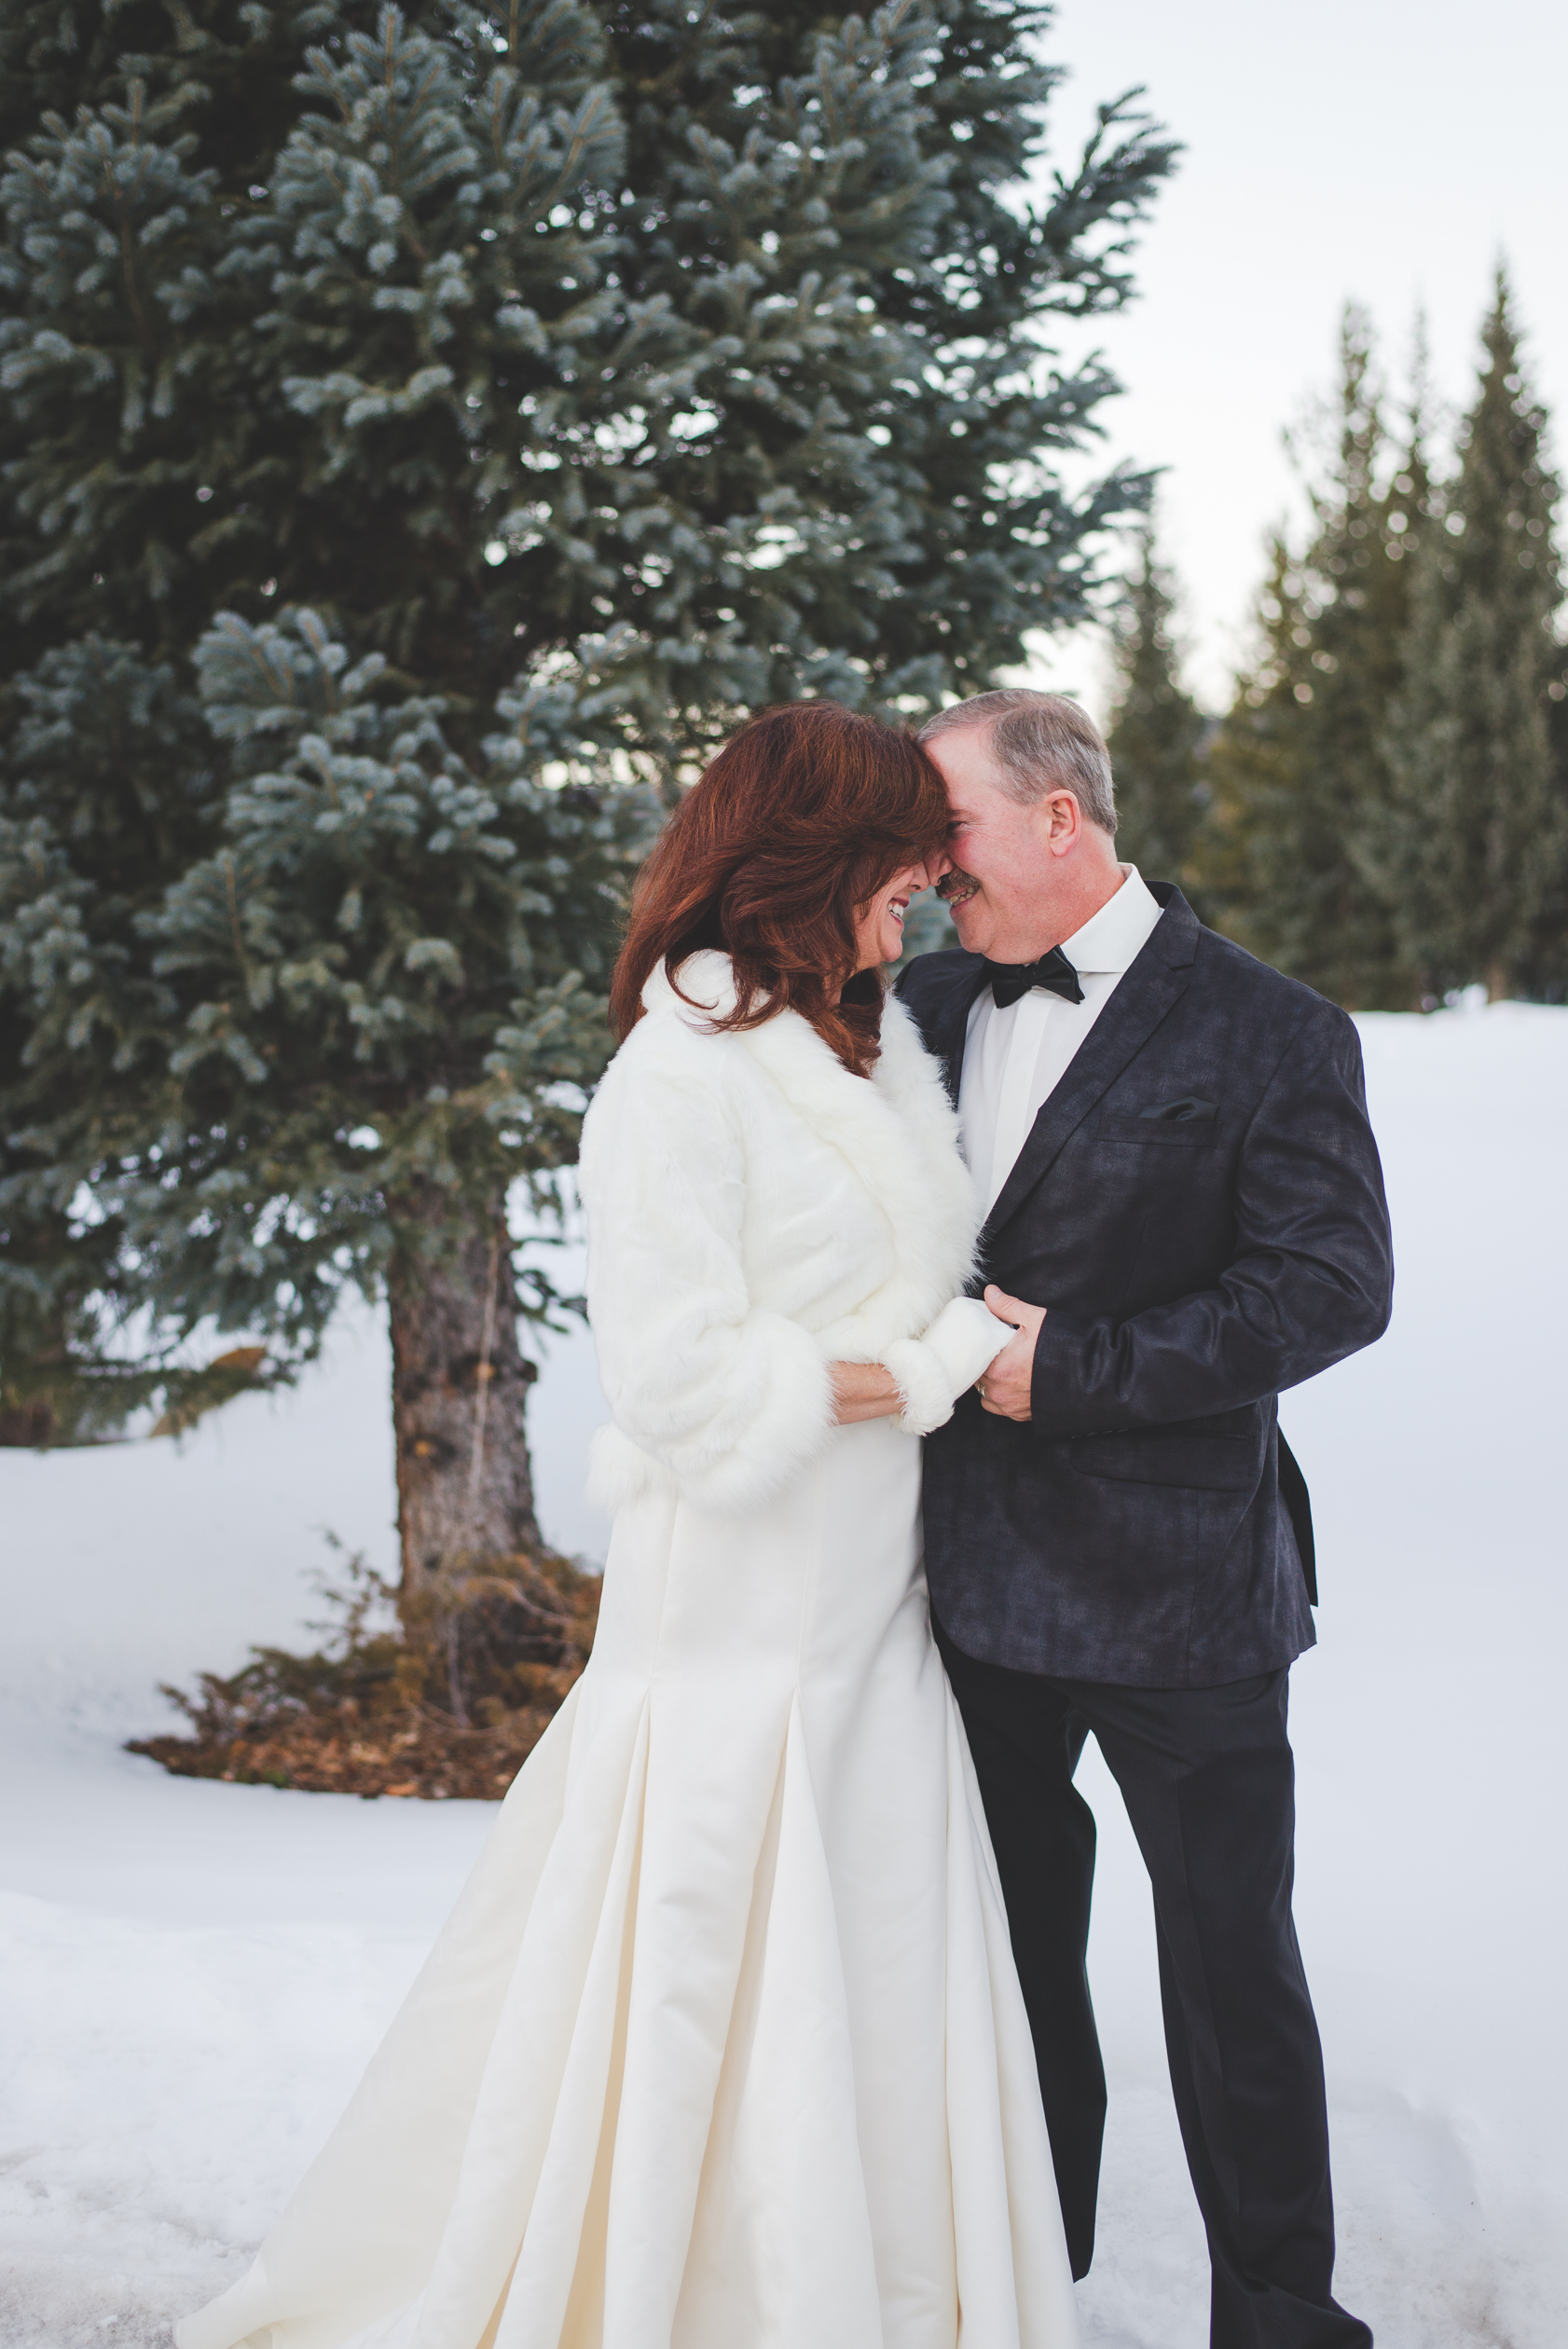 Giggles and laughter filled this intimate winter elopement in Keystone, Colorado